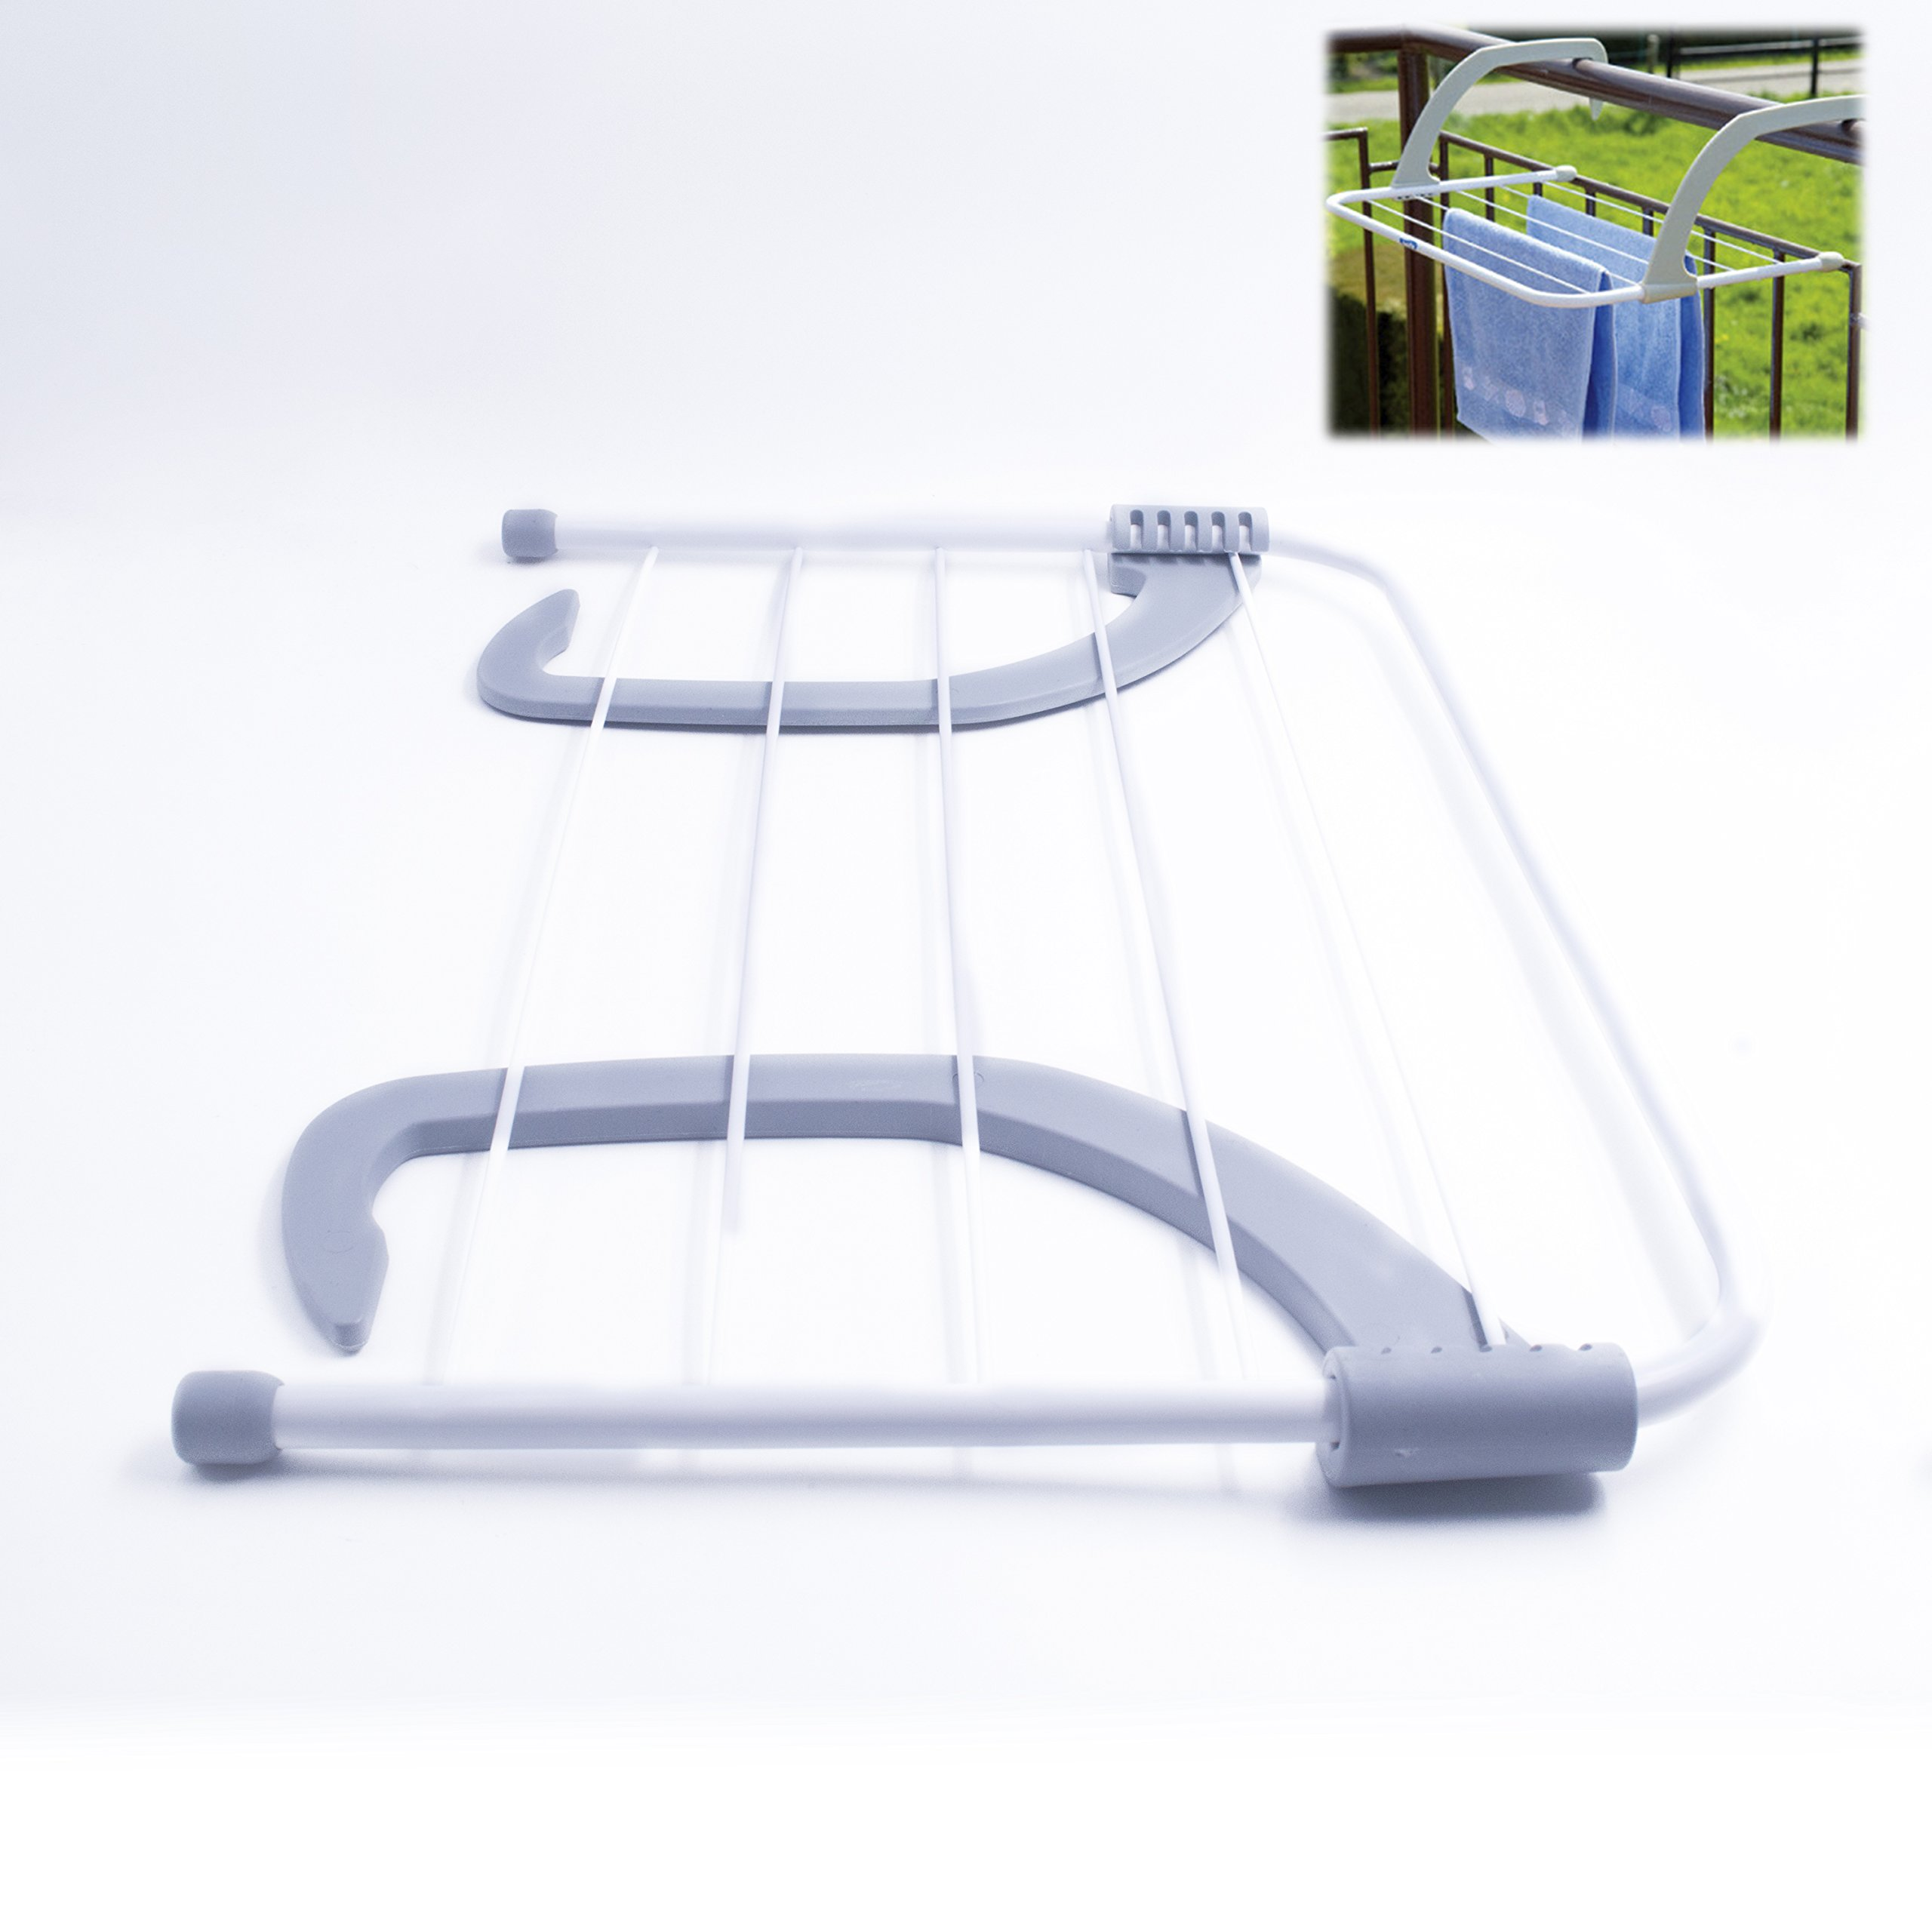 Anzirose Radiator Airer Rack Clothes Airer Towel Hanging Drying Rack over Balcony Window or Bathroom